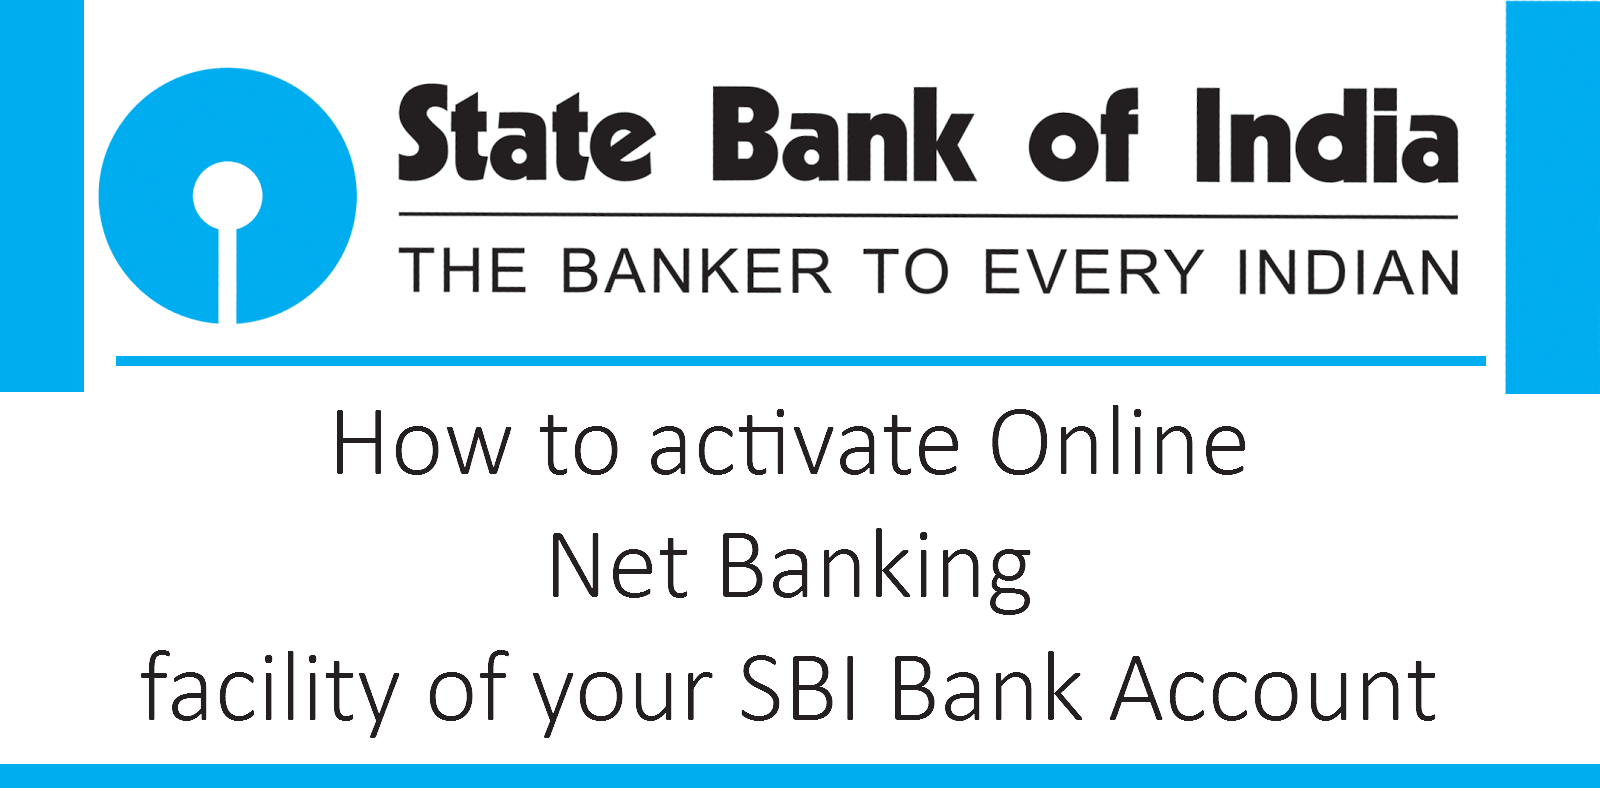 How to activate Online Net Banking